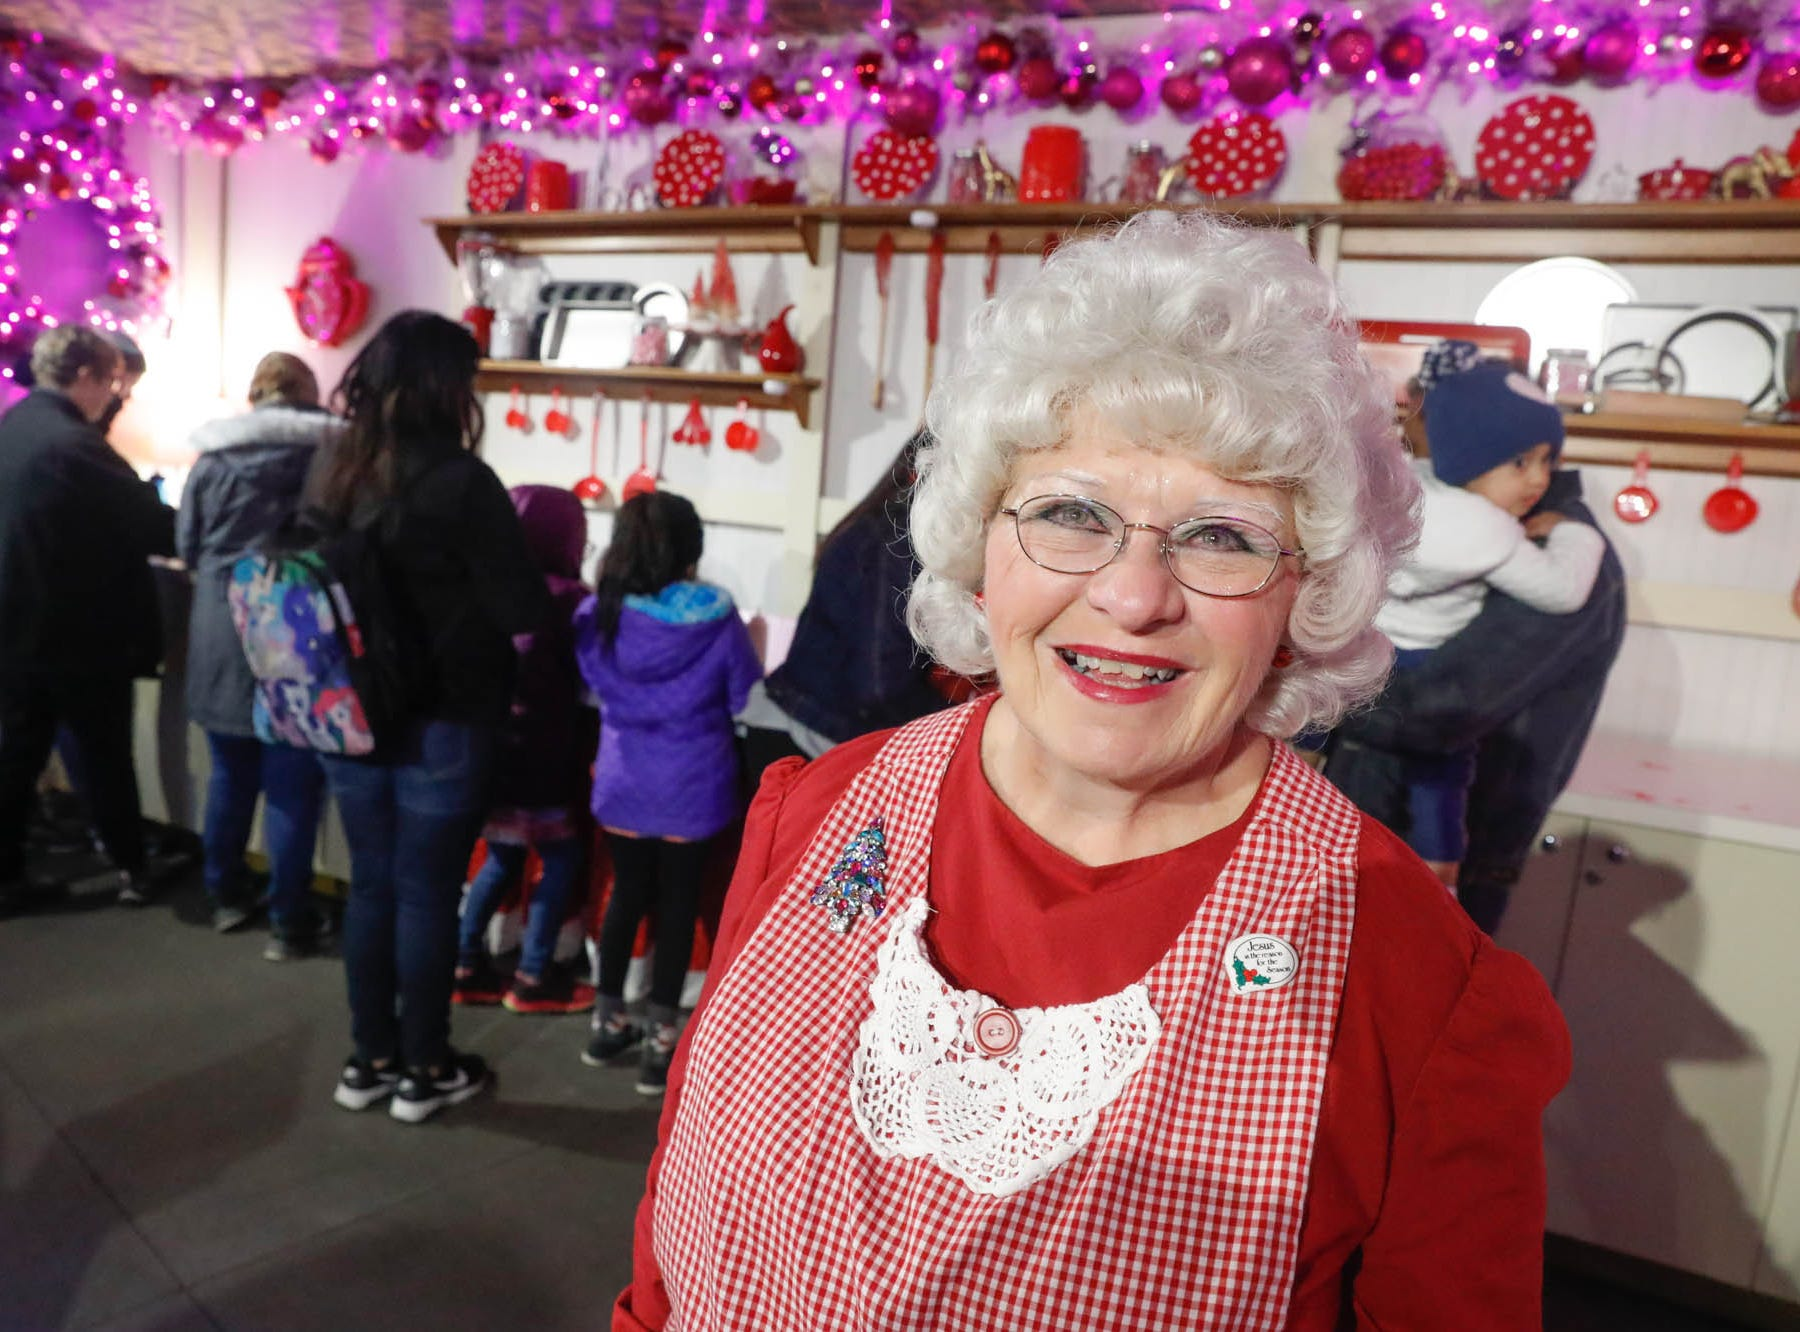 Mrs. Claws, also known at Cindy Heginbotham, greets guests who wish to decorate sweet treats during Christmas at the Indianapolis Zoo on Wednesday, Dec. 19, 2018.